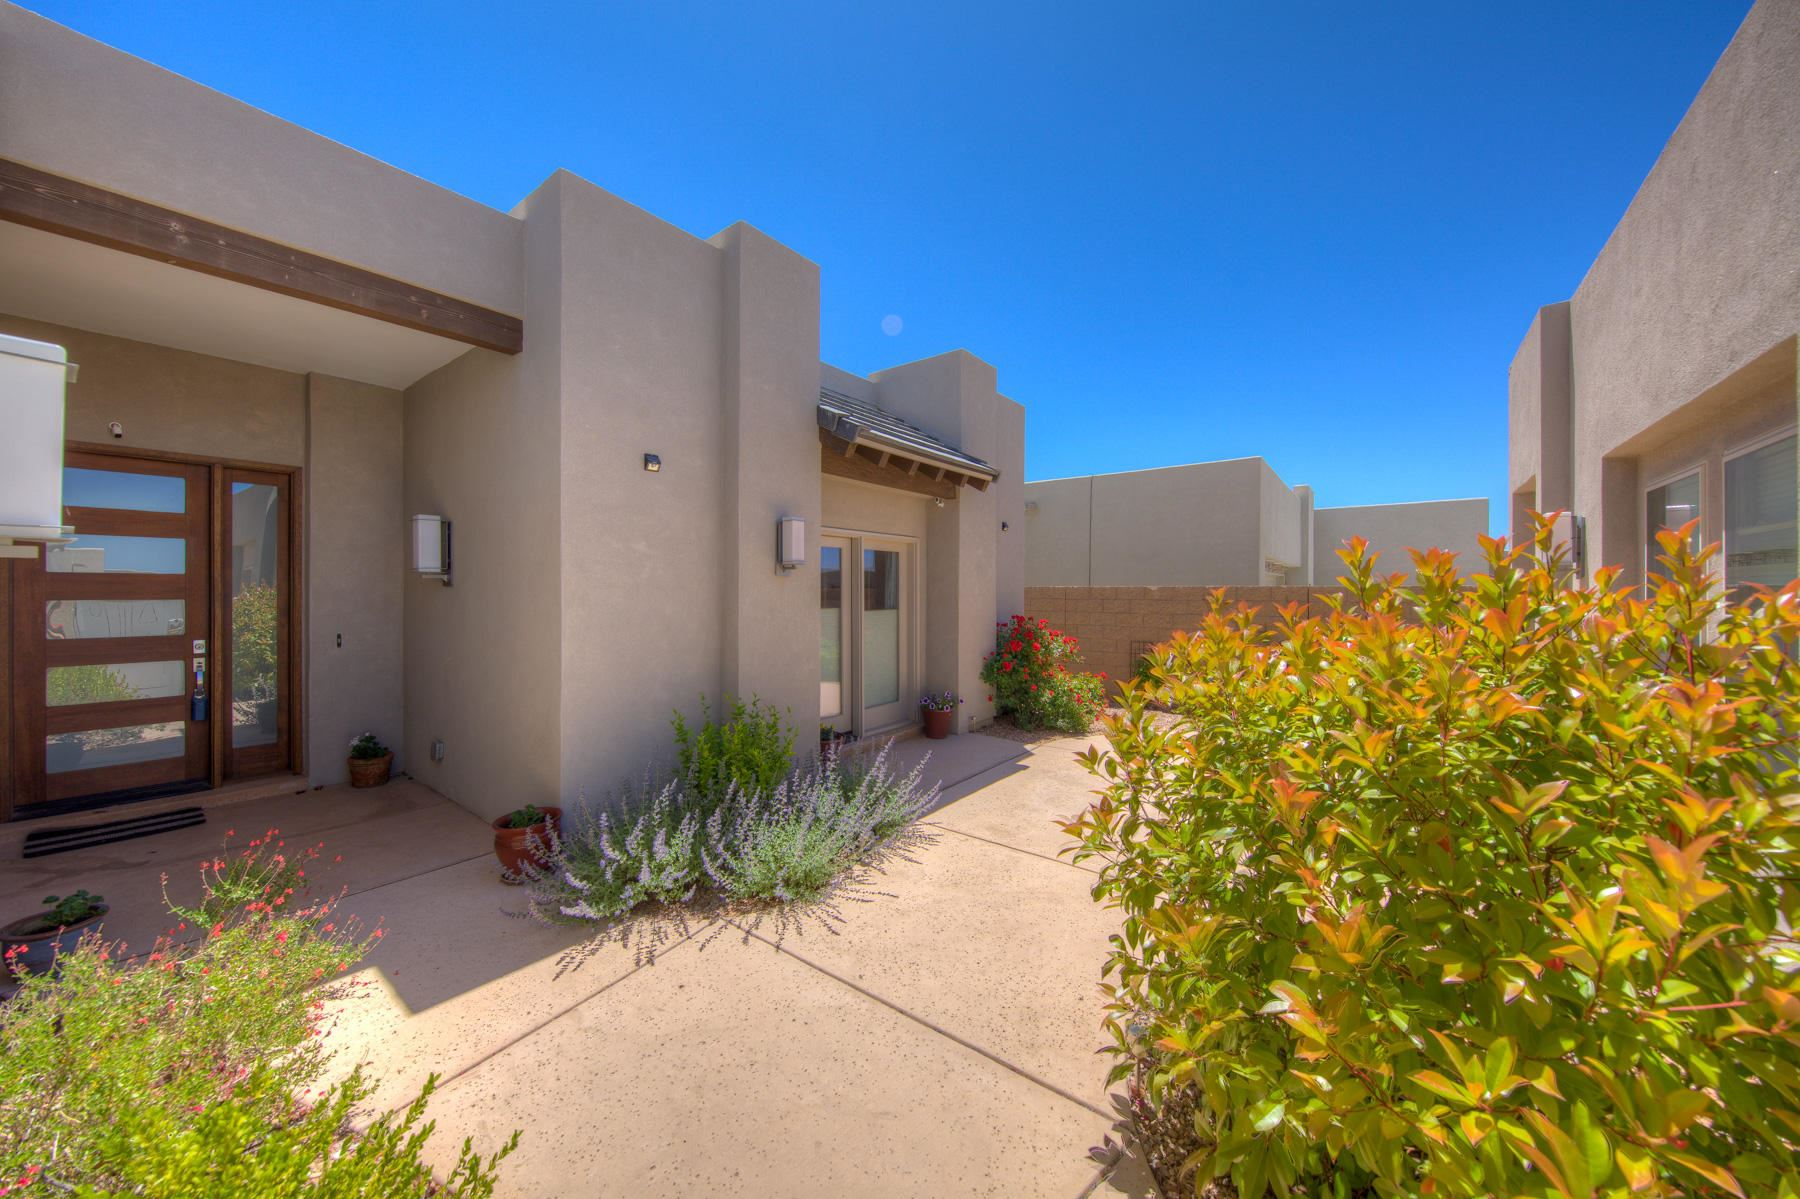 Photo of 9516 RIDGE VISTA NE, Albuquerque, NM 87122 (MLS # 968923)